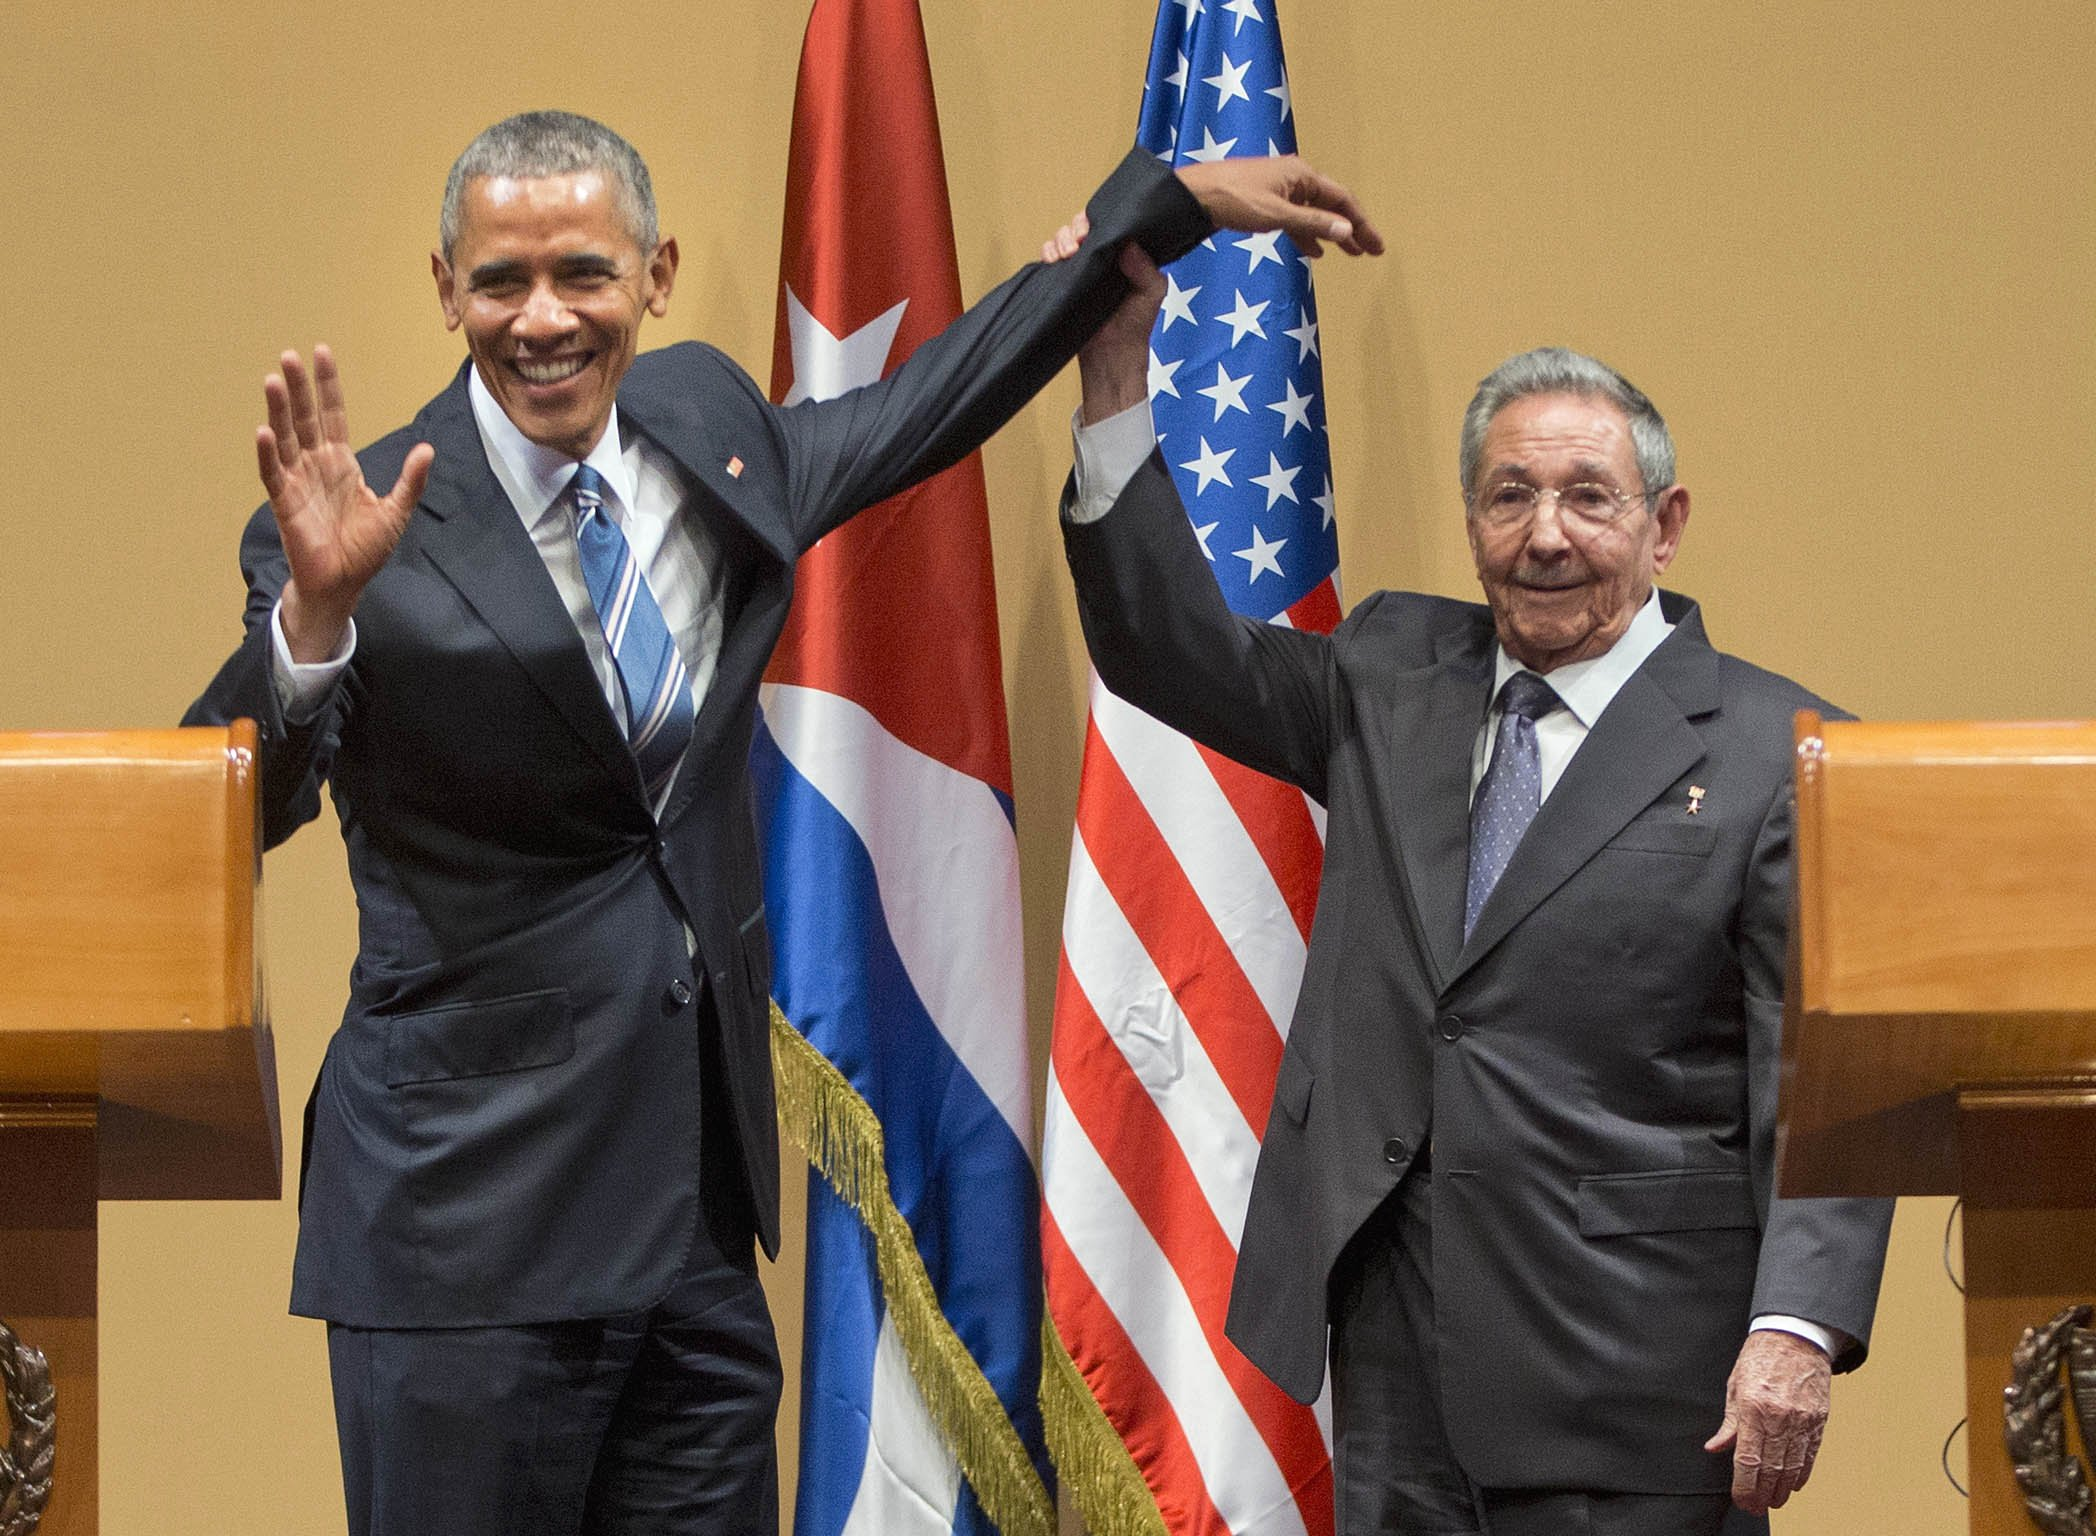 Things got real awkward during Obama's trip to Cuba